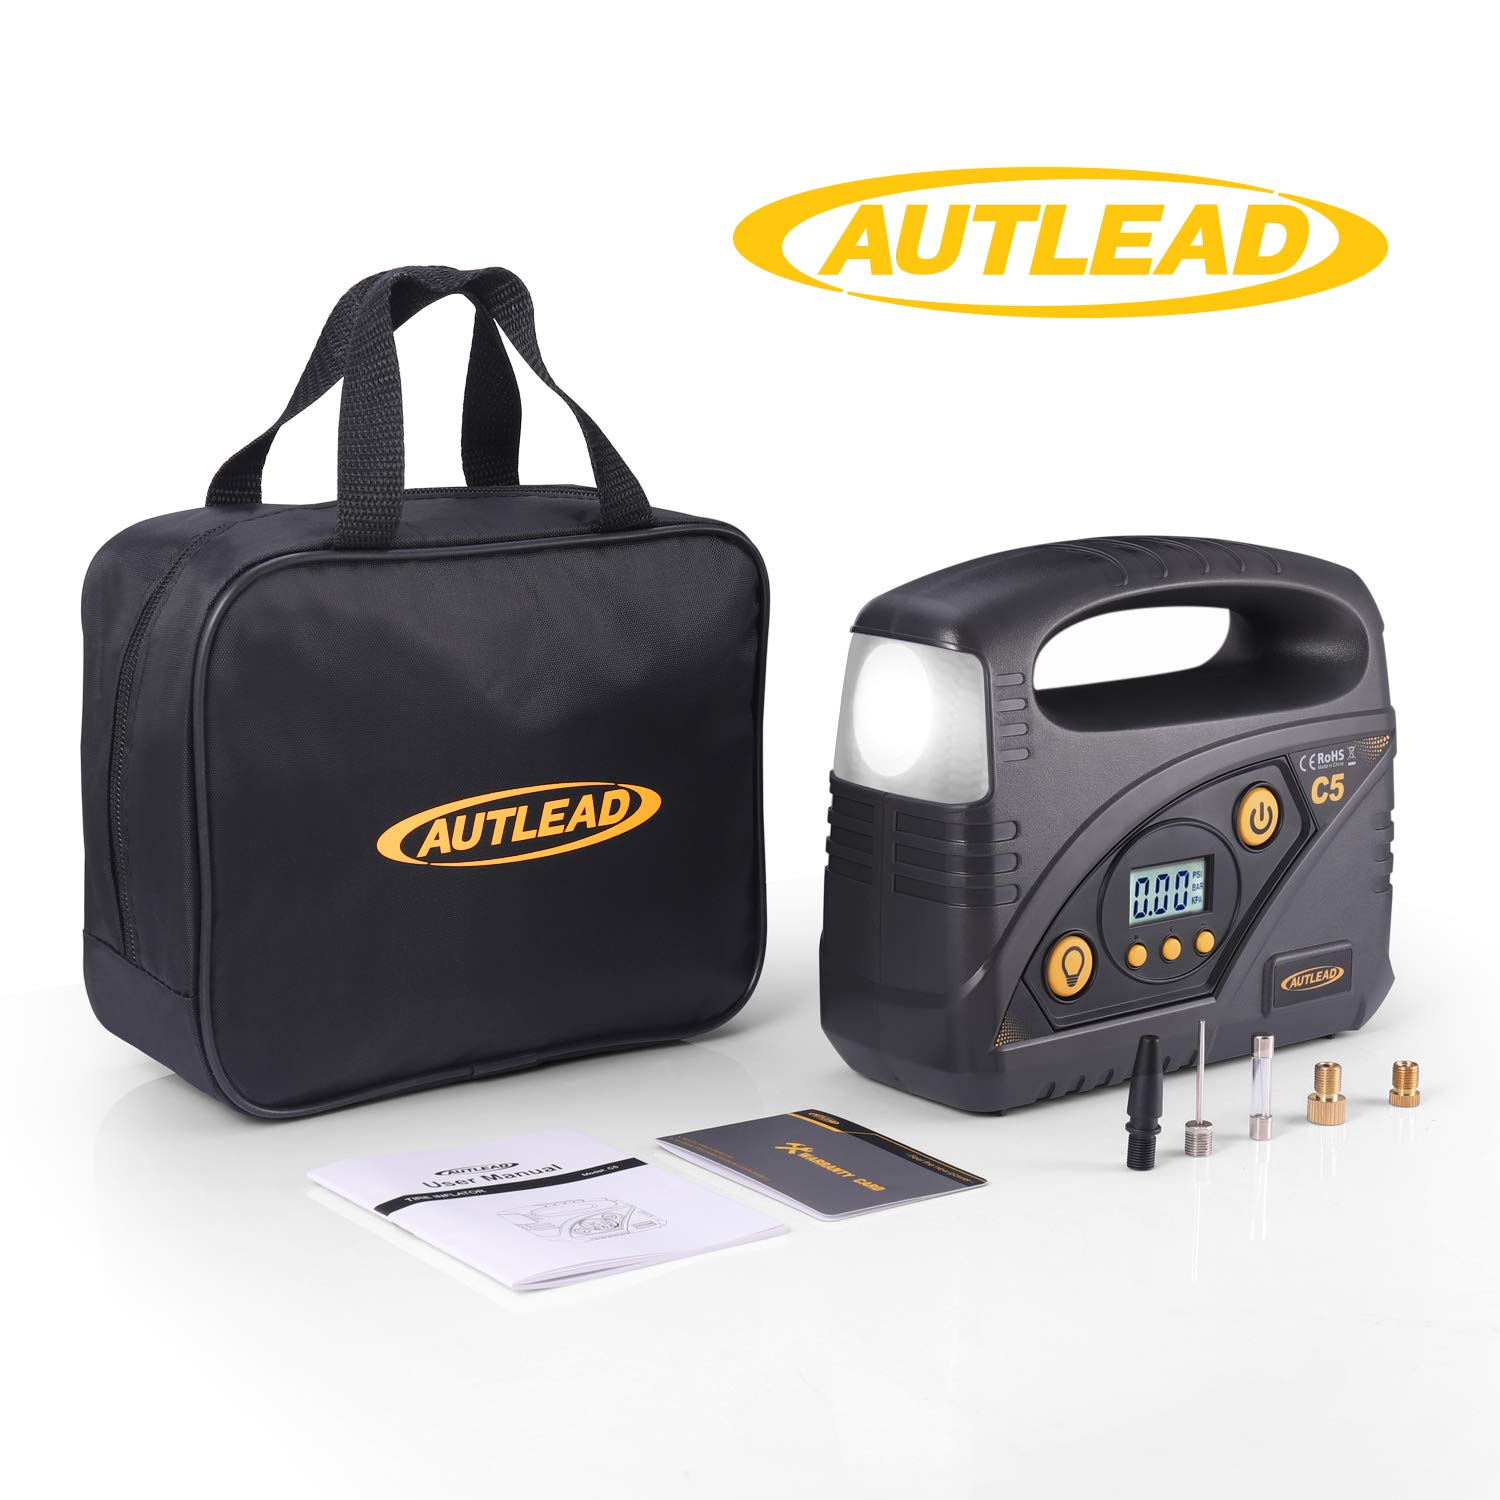 AUTLEAD C5 Digital Tire Inflator, 40L/min Portable Air Compressor Pump, 12V DC Auto Tire Pump with Pressure Gauge, LED Light, 4 Adaptors for Car, Bicycle, Motorbike and Others by AUTLEAD (Image #9)